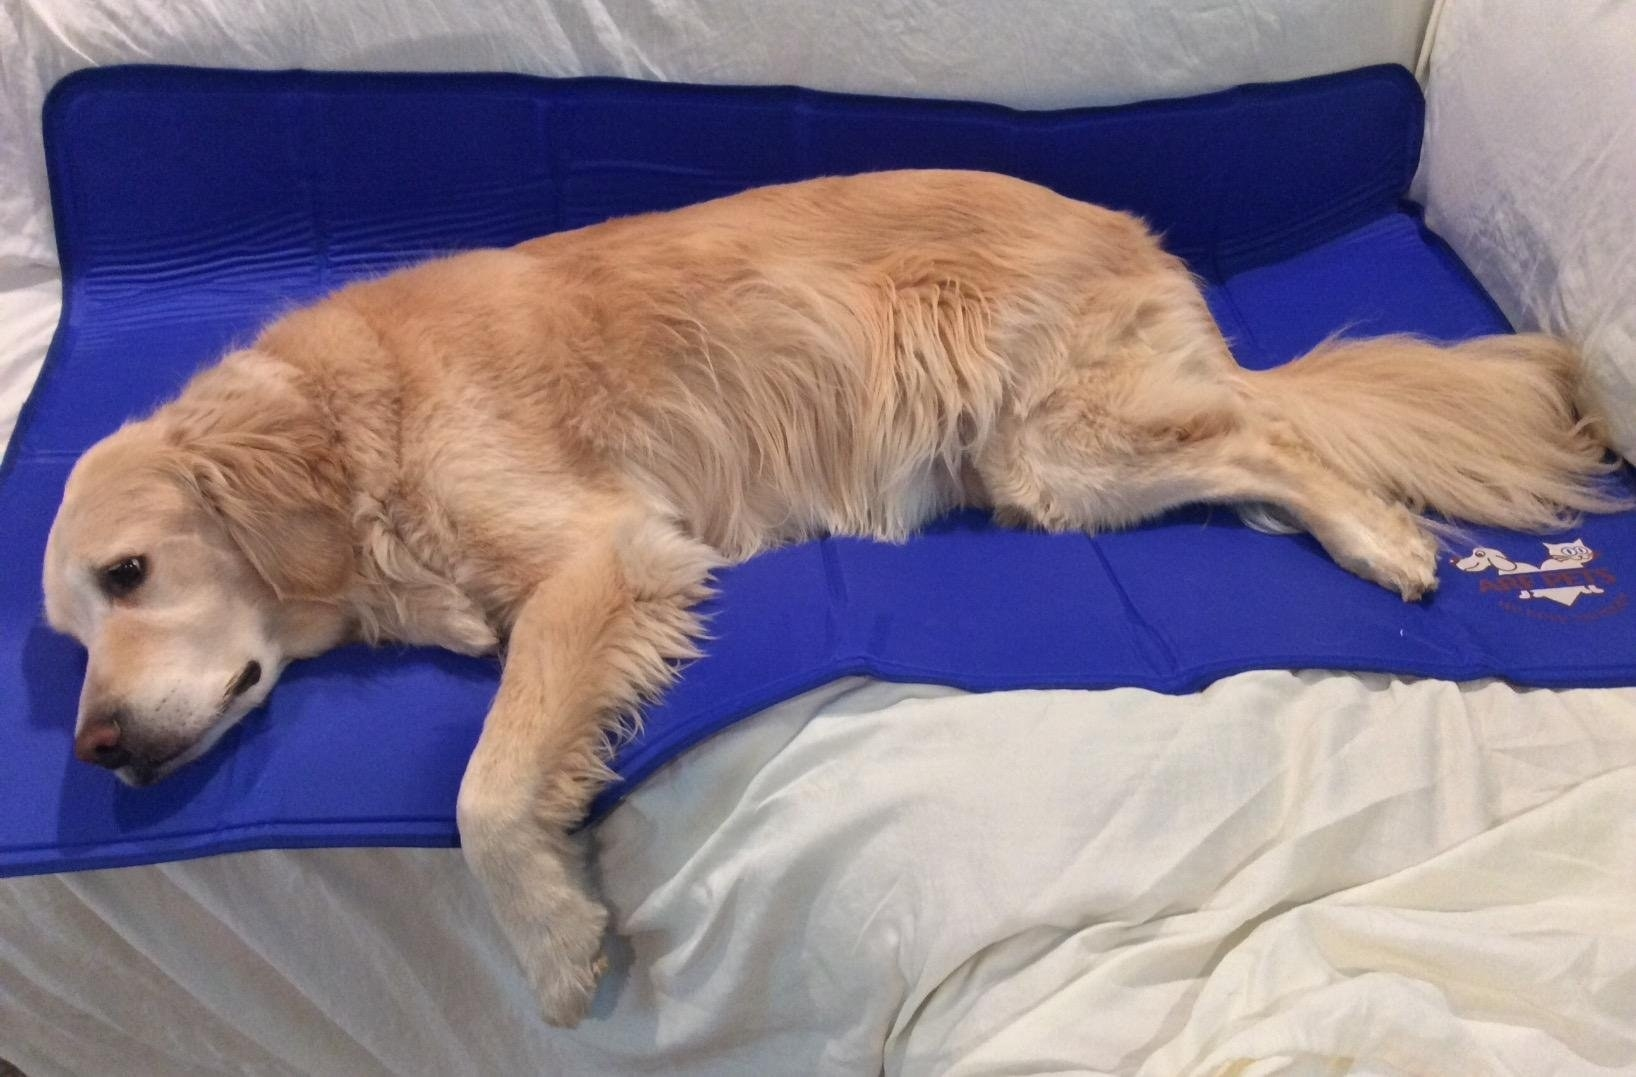 The mat, fully laid out on a couch, with an 85 pound golden retriever fitting onto it comfortably